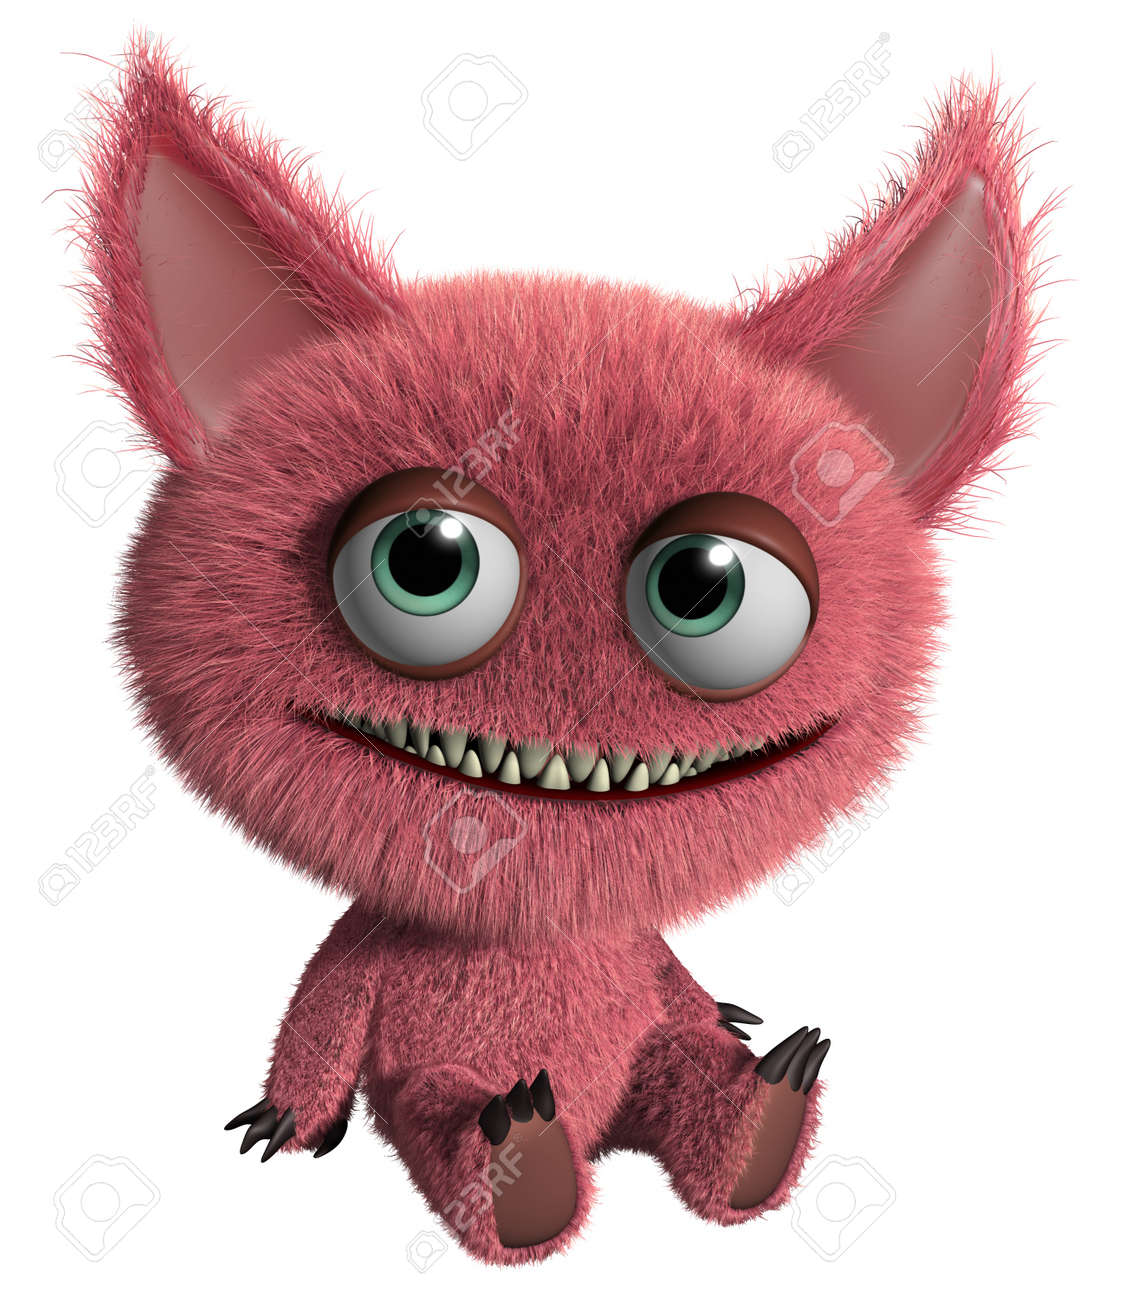 3d cartoon cute furry gremlin monster Stock Photo - 15743614